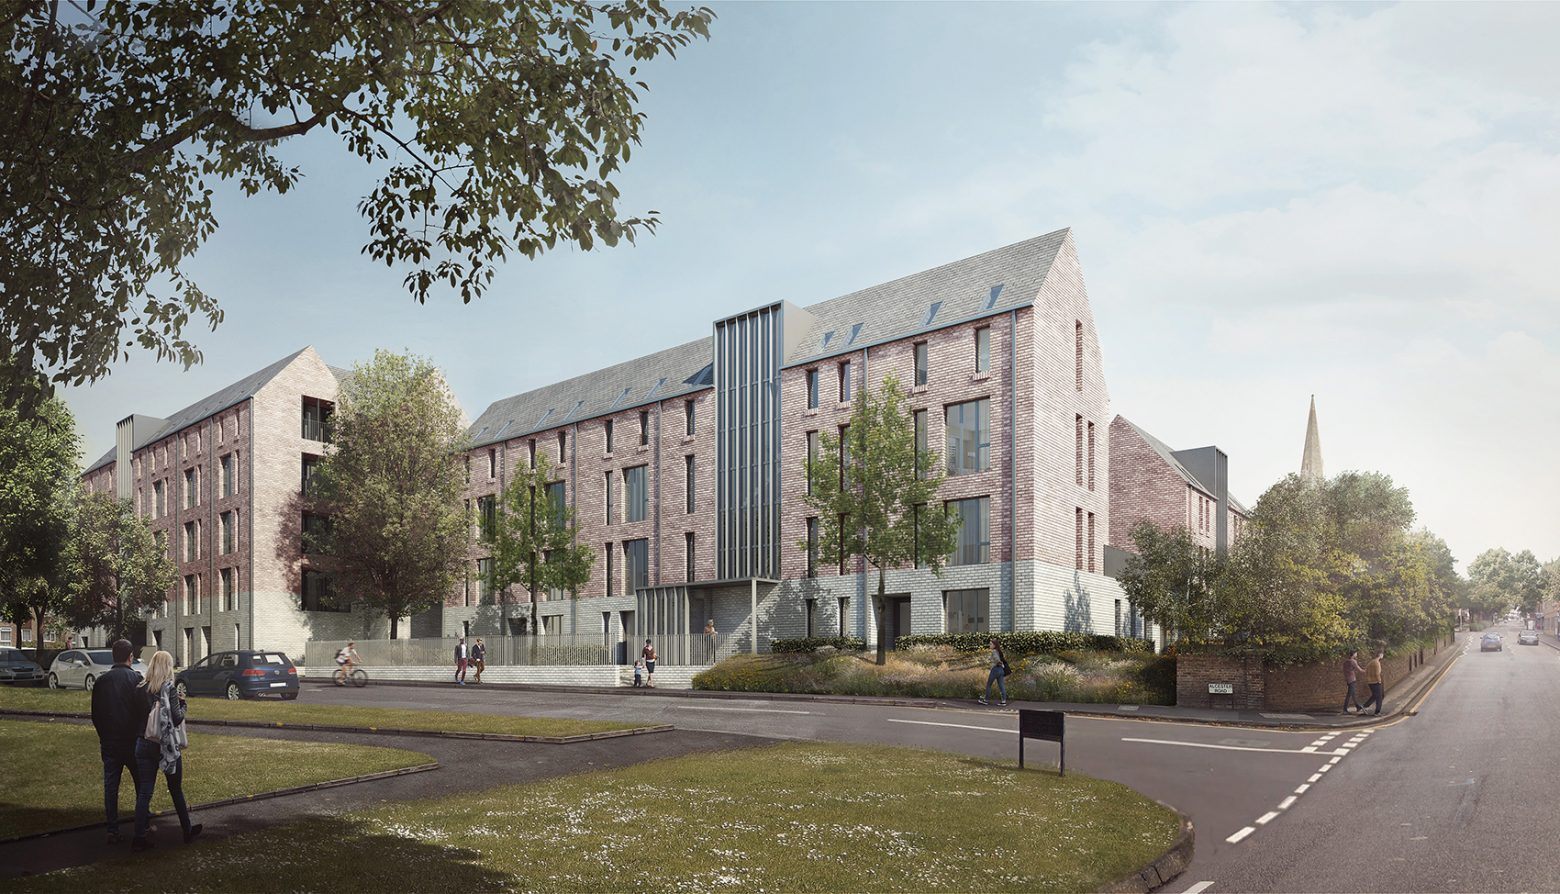 Planning consent granted for Ludlow Lodge